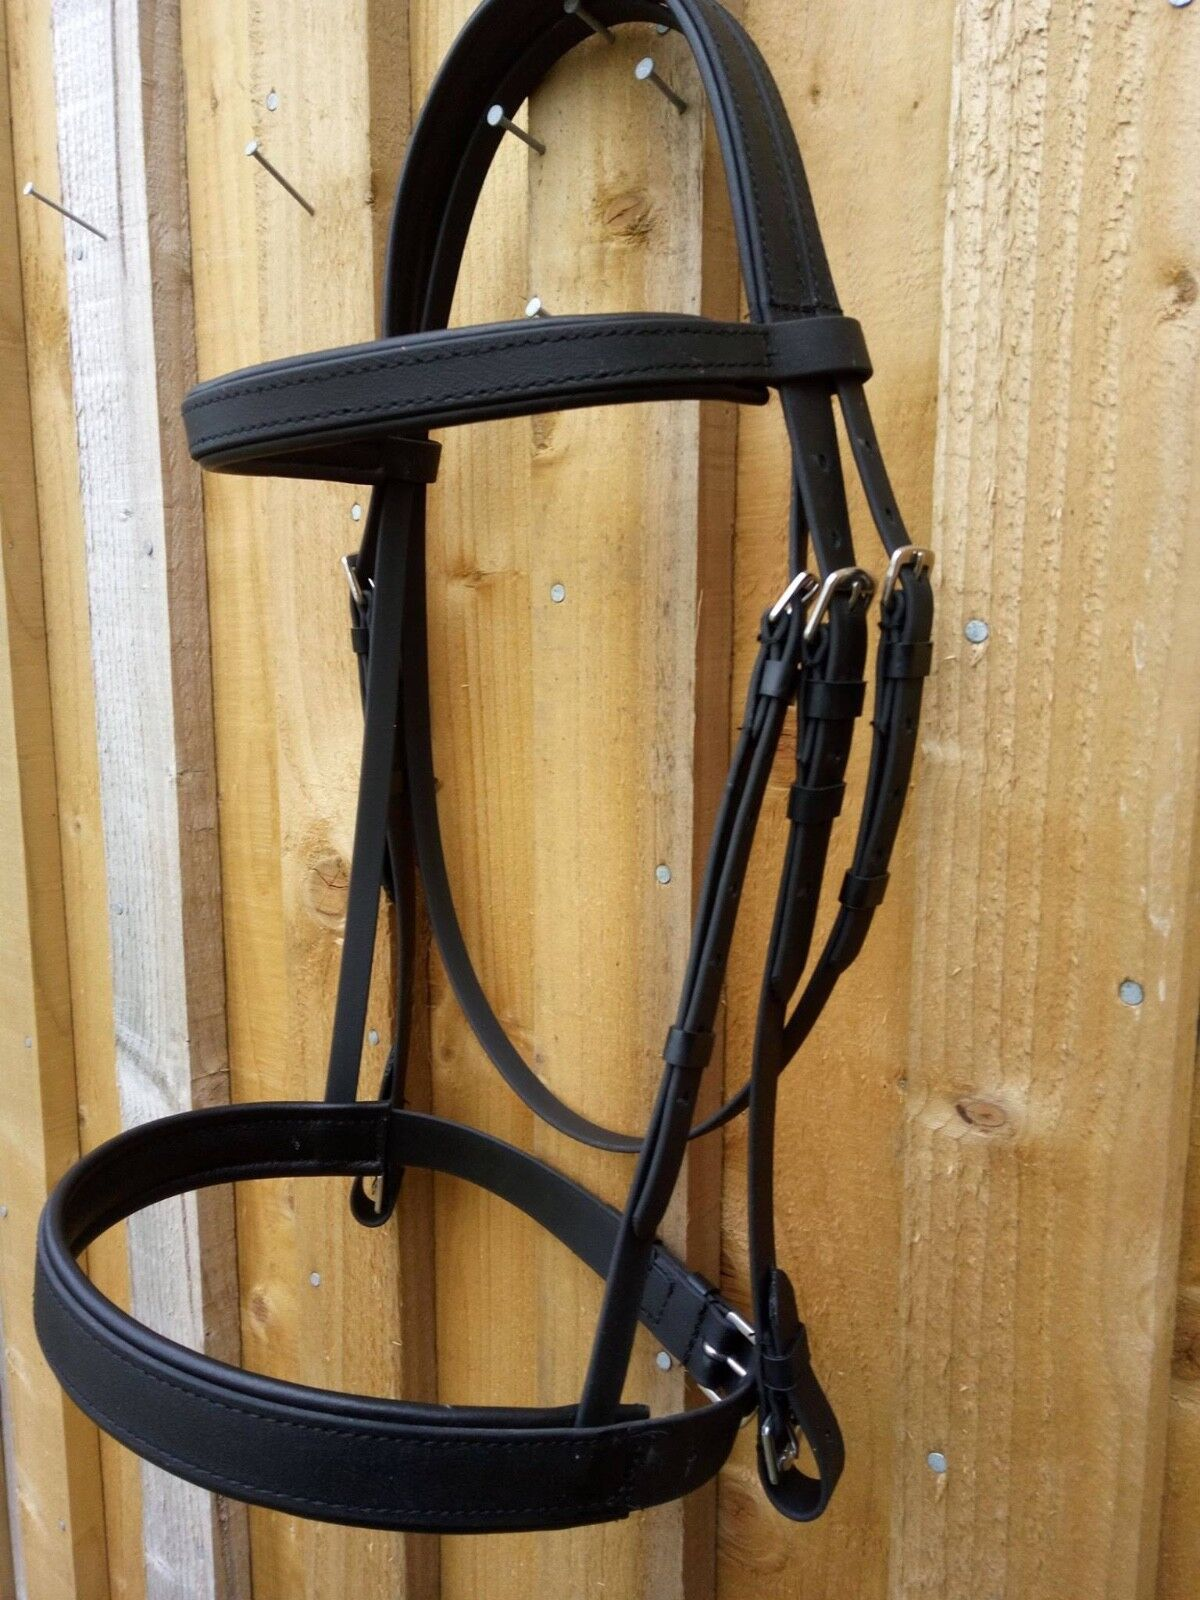 Synthetic bridle biothane all colours/ PLAS Größes matching reins PLAS colours/ EQUESTRIAN 45746a